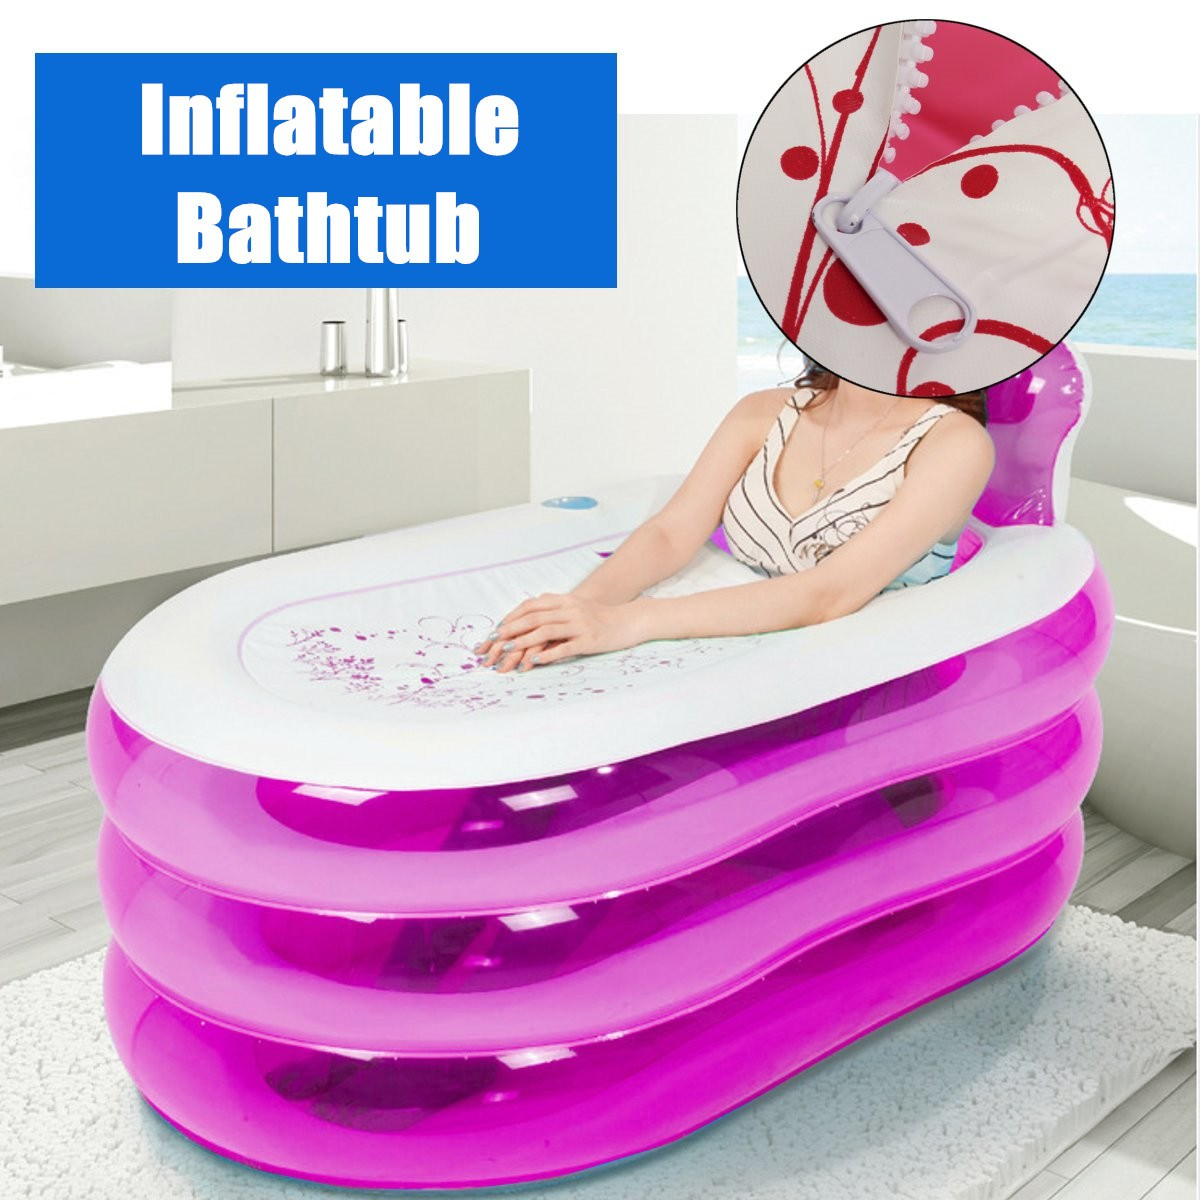 Inflatable Bathtub Adult PVC Folding Portable Steam Spa Sauna Bath tub bathtub Home hot tub New Arrival ...